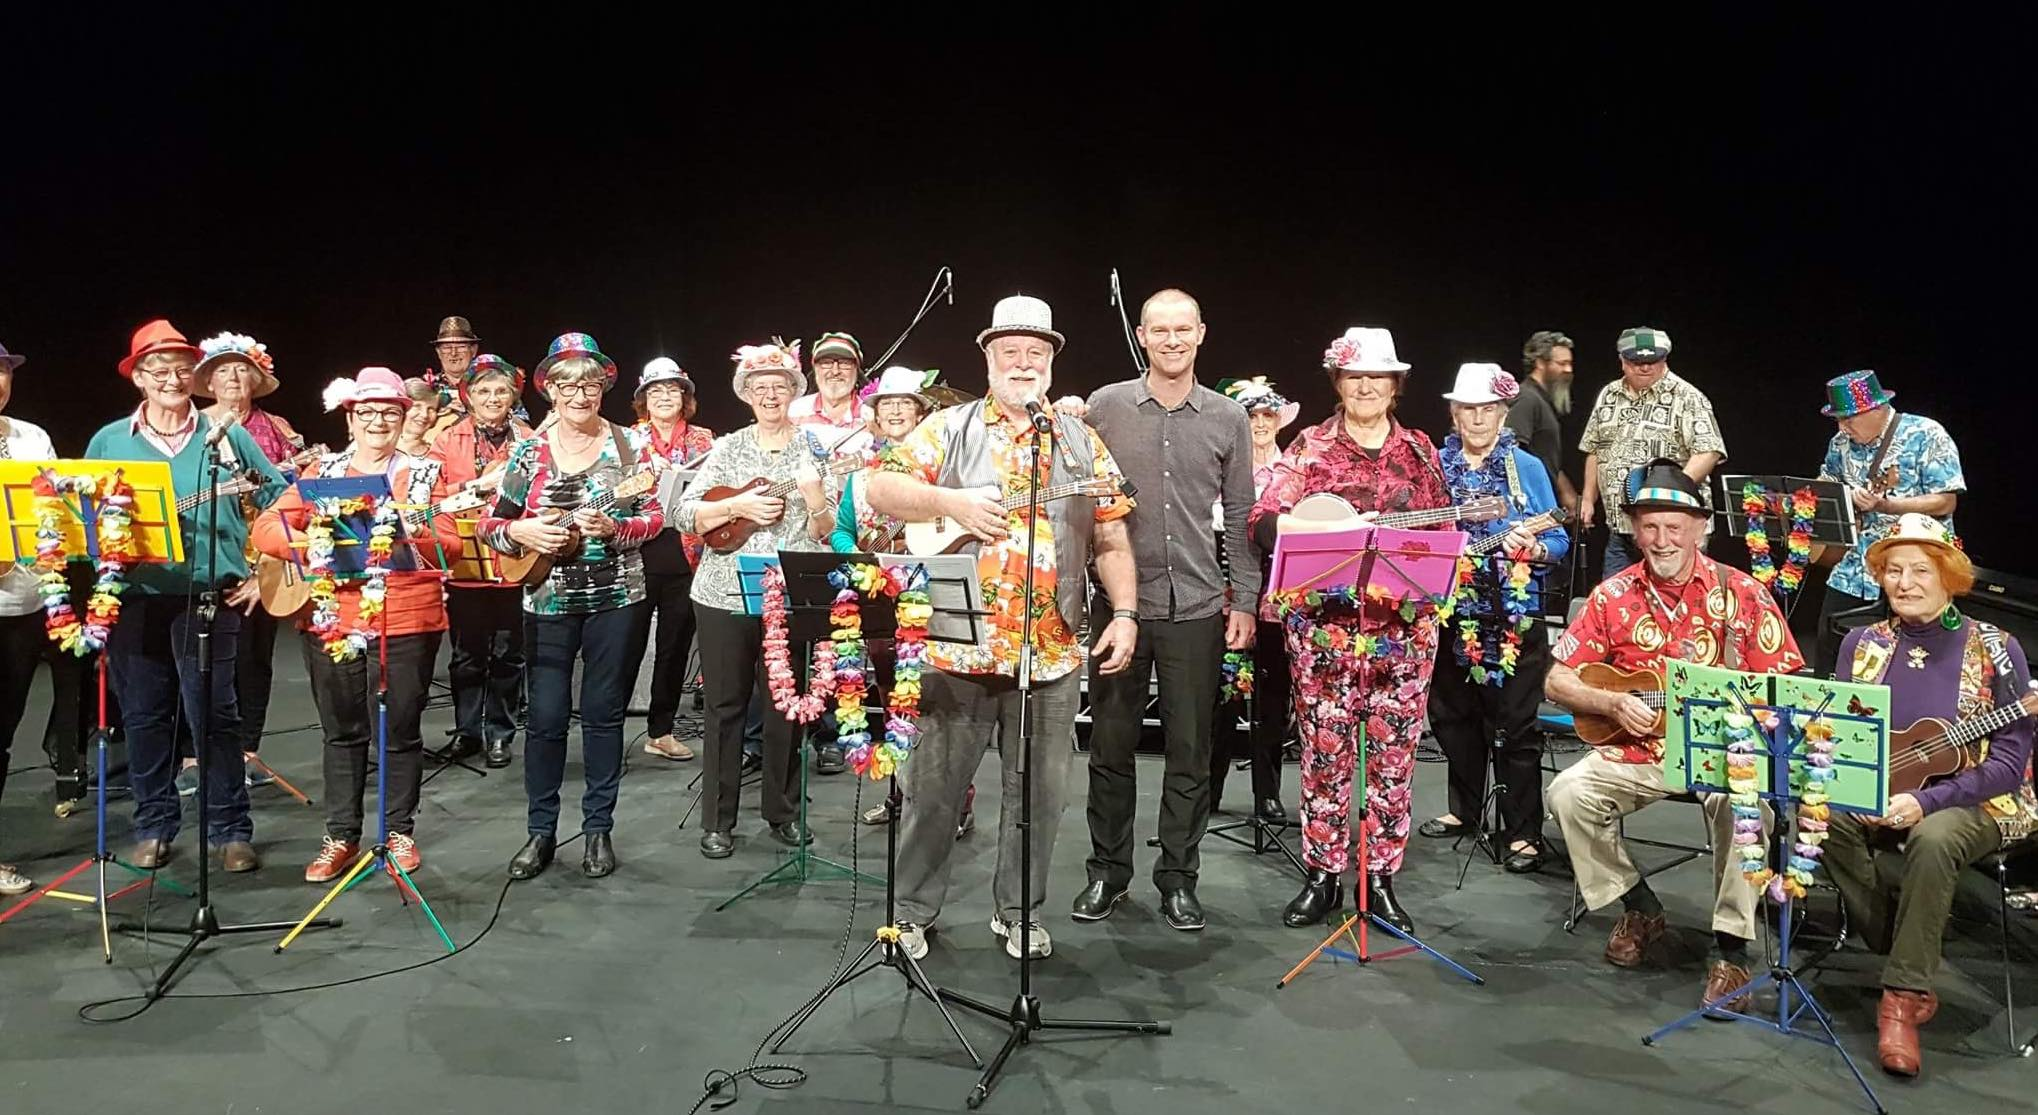 The full ukulele ensemble, what a colourful bunch!